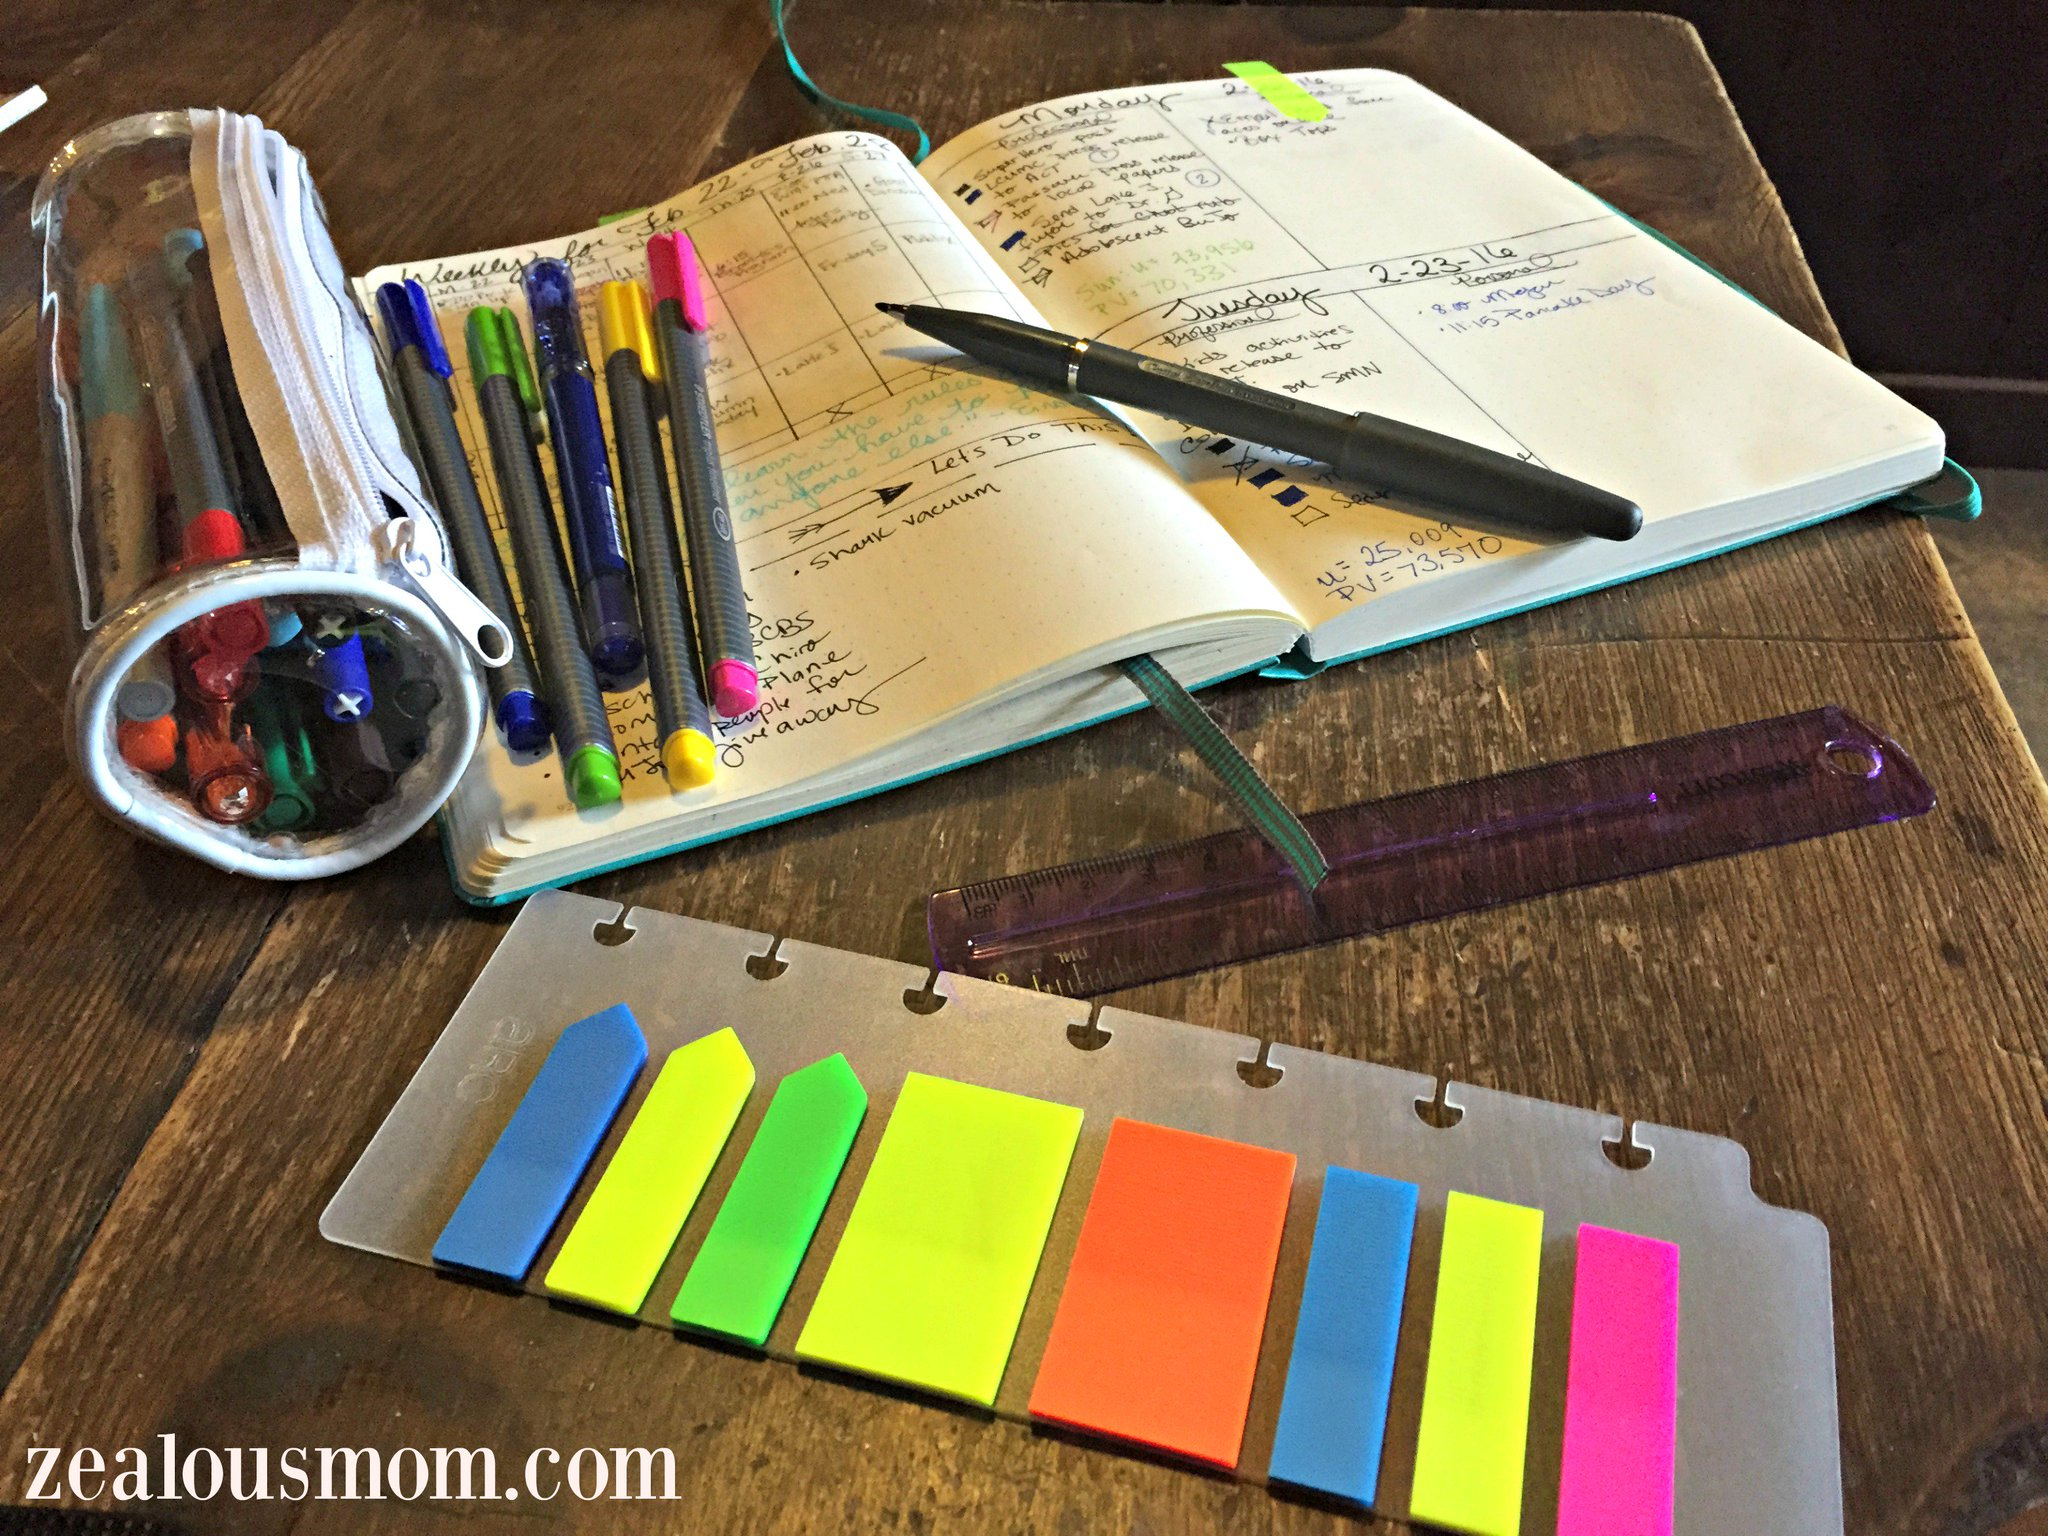 Bullet journaling sites, blogs, groups, supplies and resources. @GouletPens @STAEtriplus https://t.co/jXY8a6Mwxk